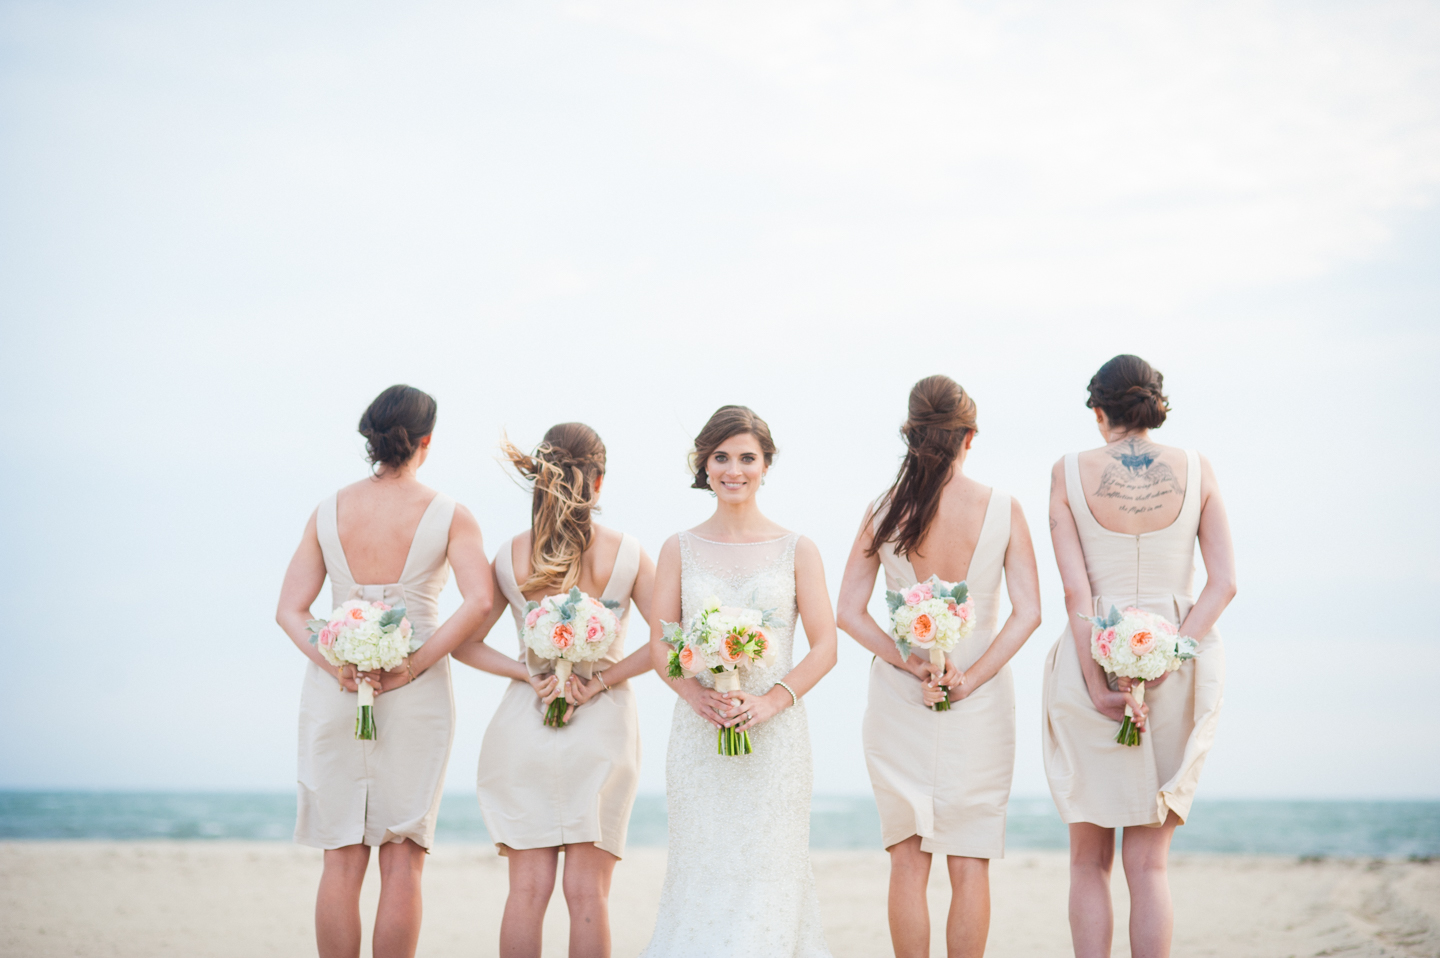 beautiful bride faces camera while her bridesmaids show off their flowers and the backs of their dresses